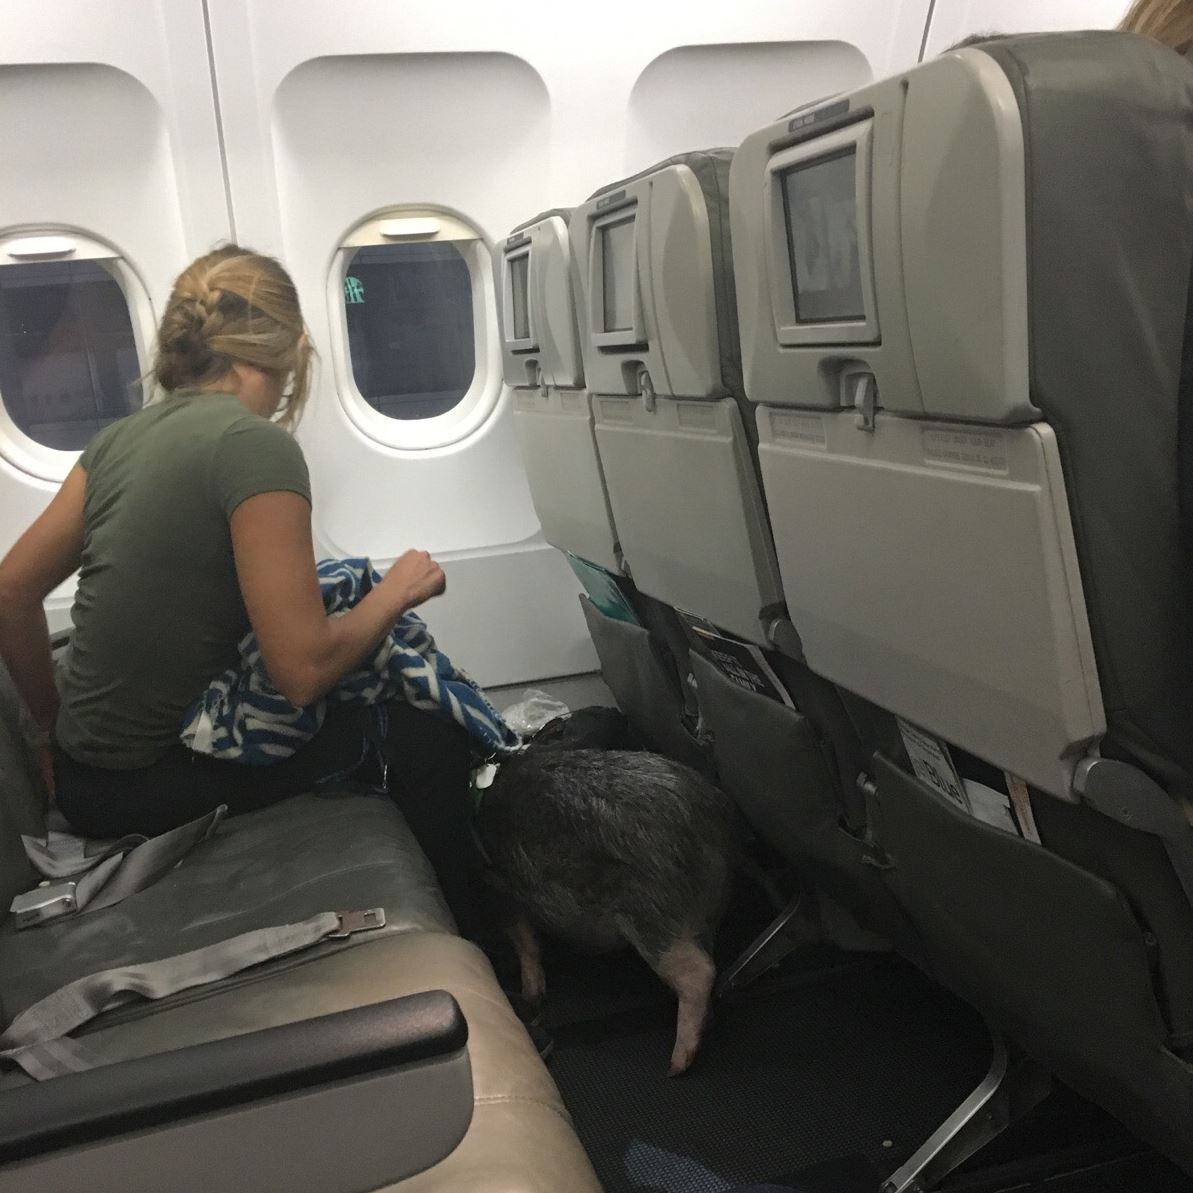 pigsfly3-2 Megan Peabody and her pig, Hamlet, await takeoff on a plane to Puerto Rico on Dec. 25.